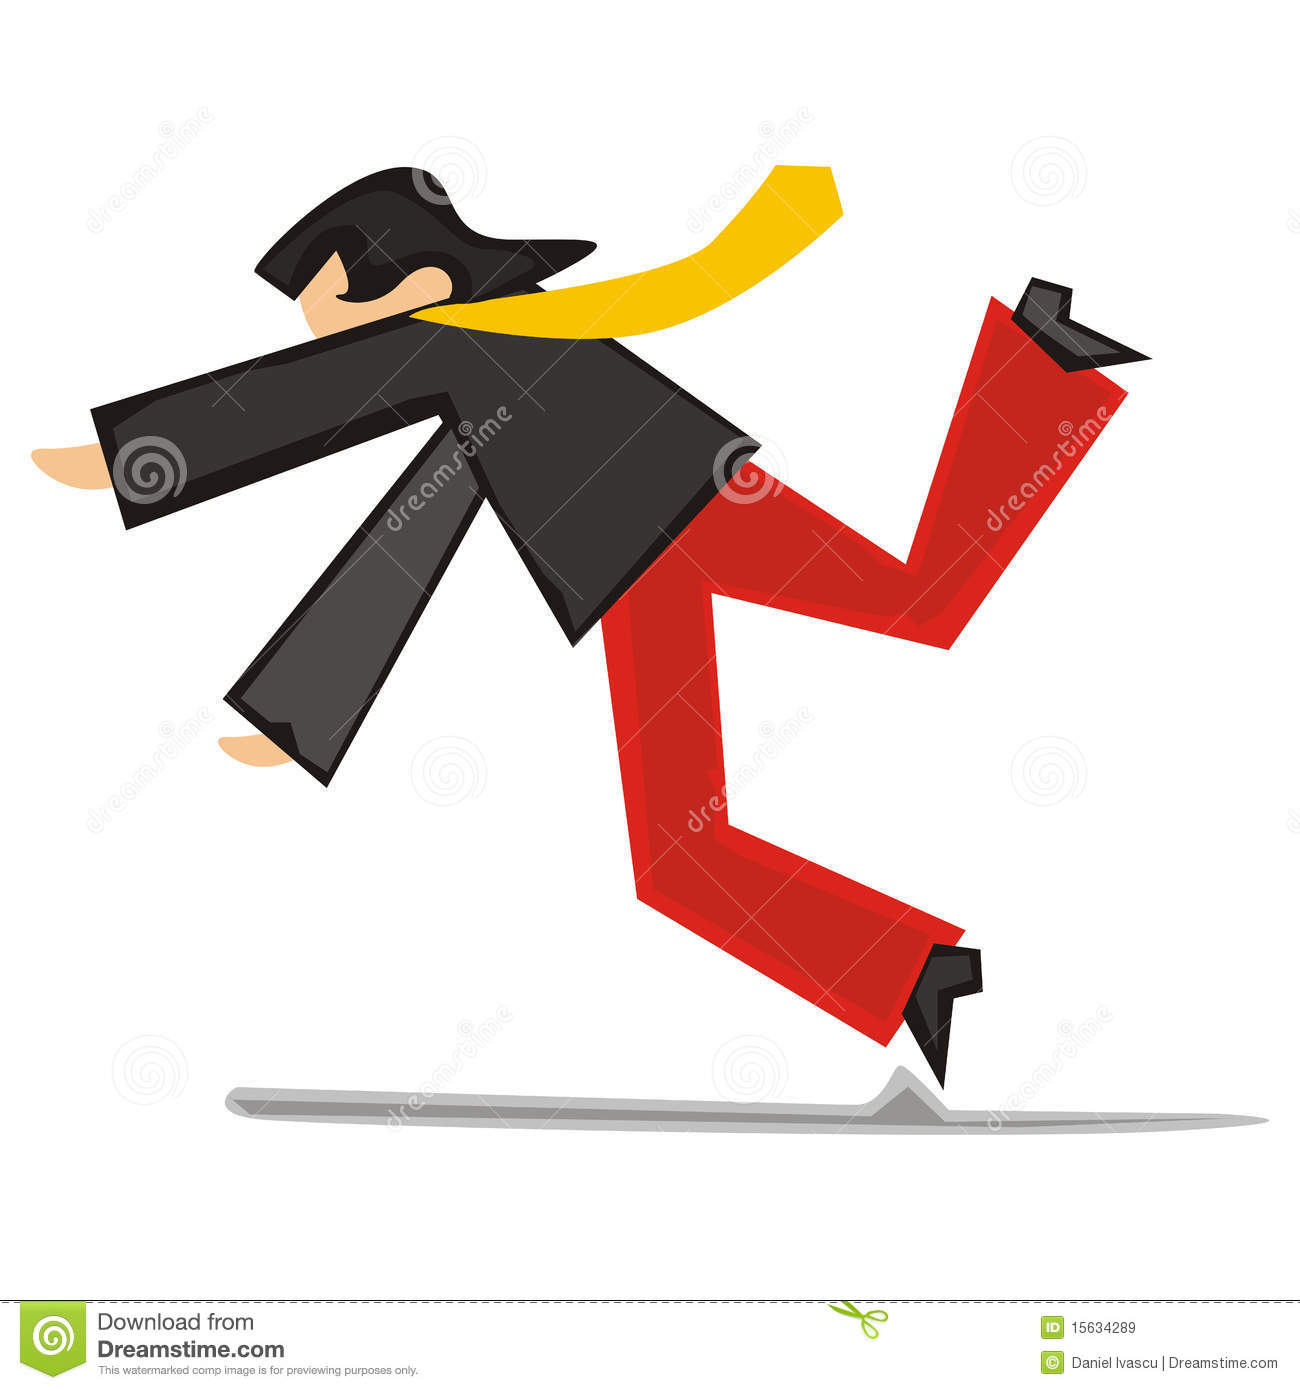 Walking Man Stick Figure Pictogram Set 726878272 together with Watch together with Watch as well Royalty Free Stock Image Young Man Falling Down Steep Stairs Spiral Staircase Image33728526 moreover Falling Down Stairs Memes. on people falling down stairs